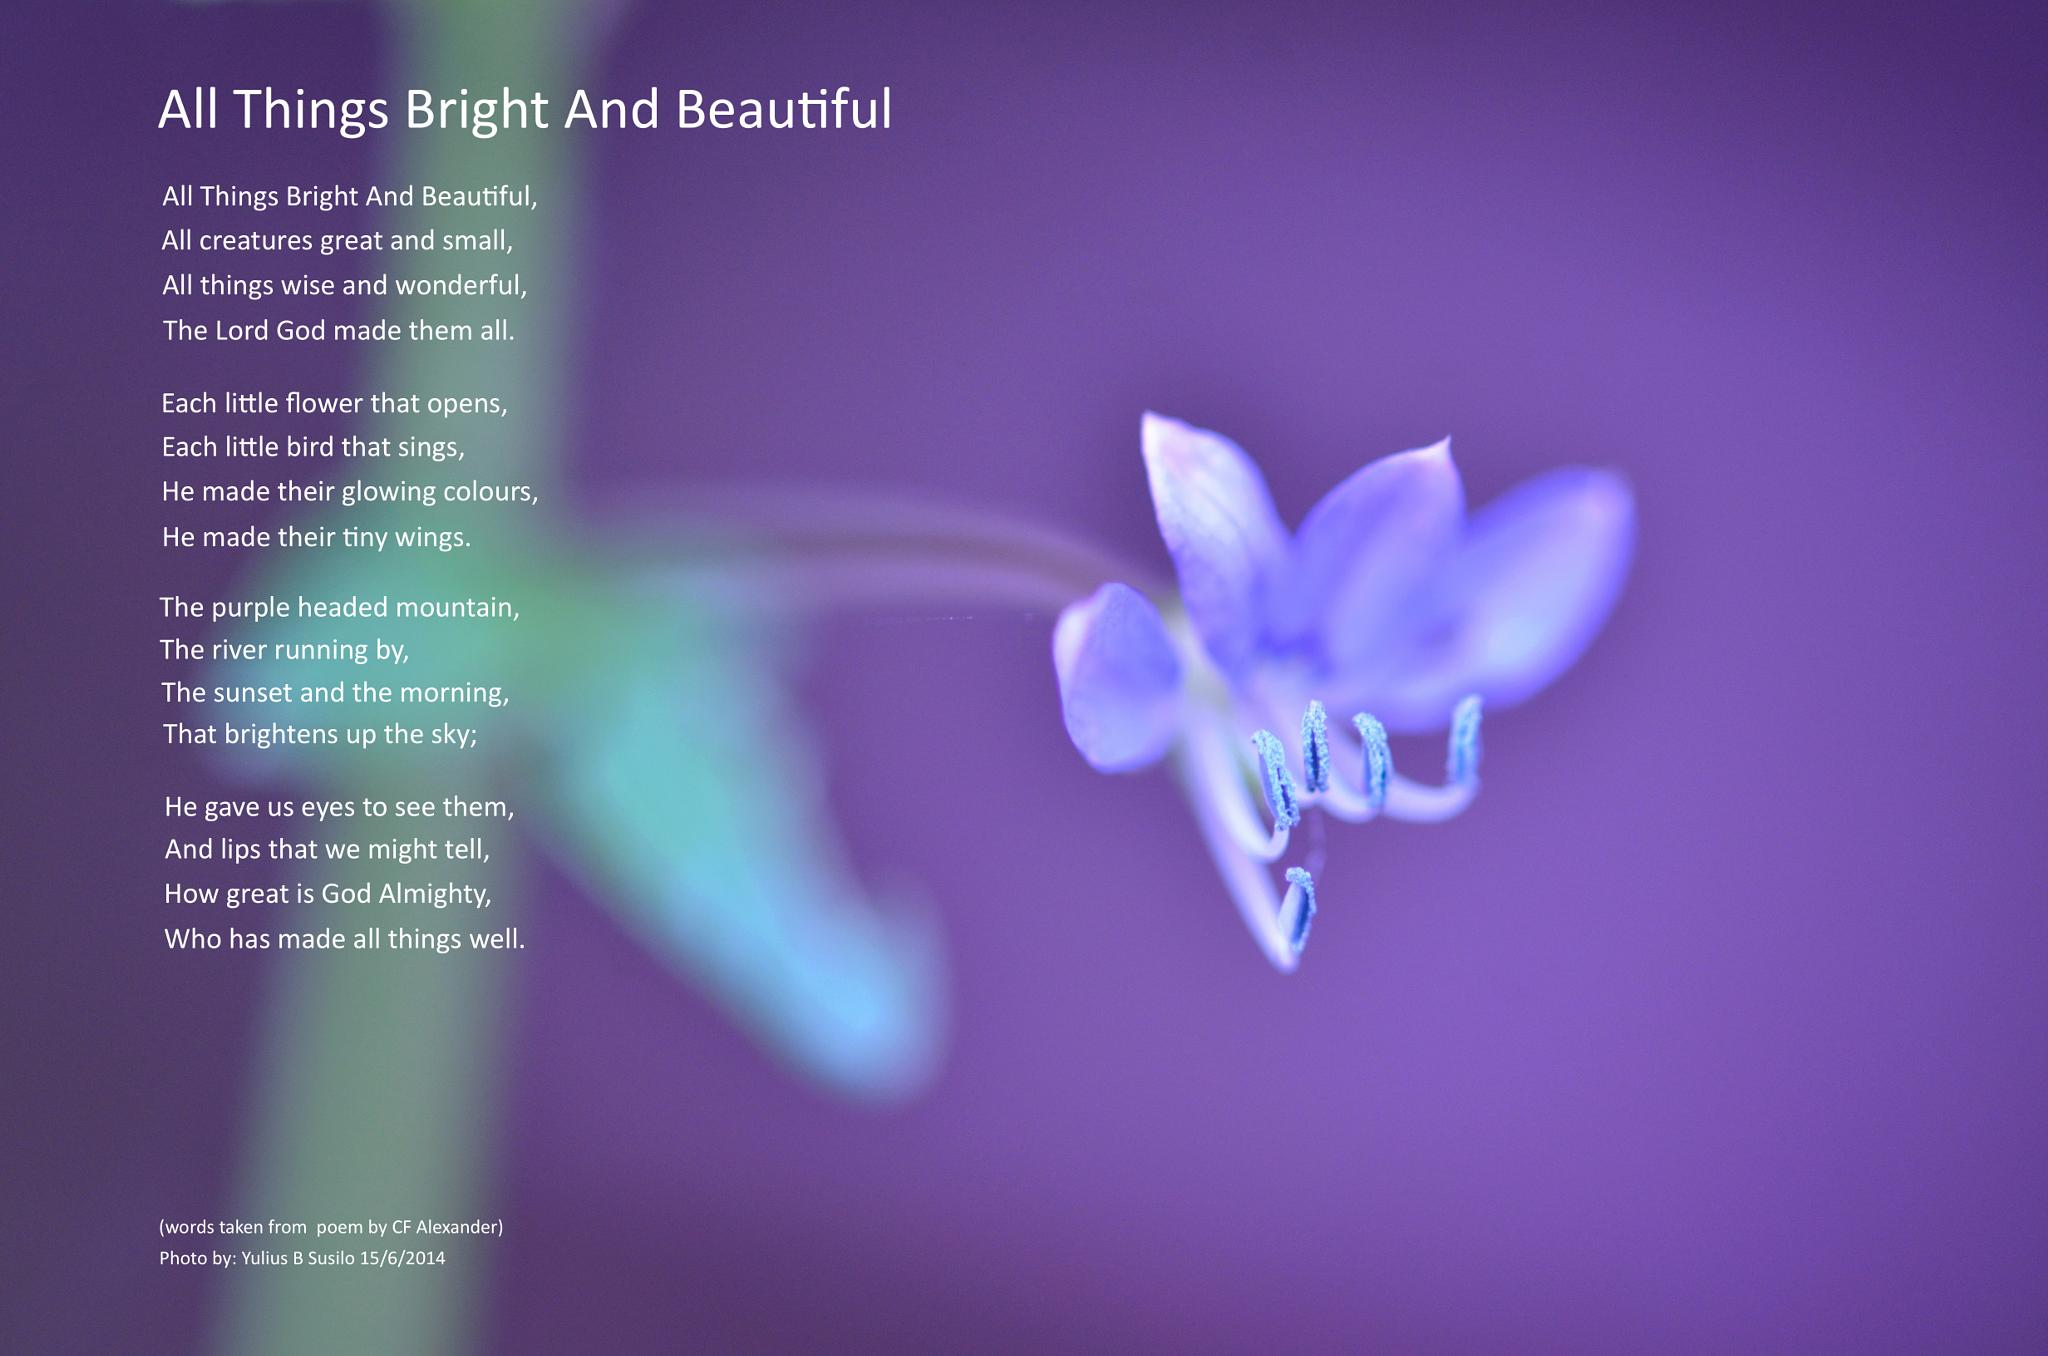 All Things Bright And Beautiful by Yulius B Susilo